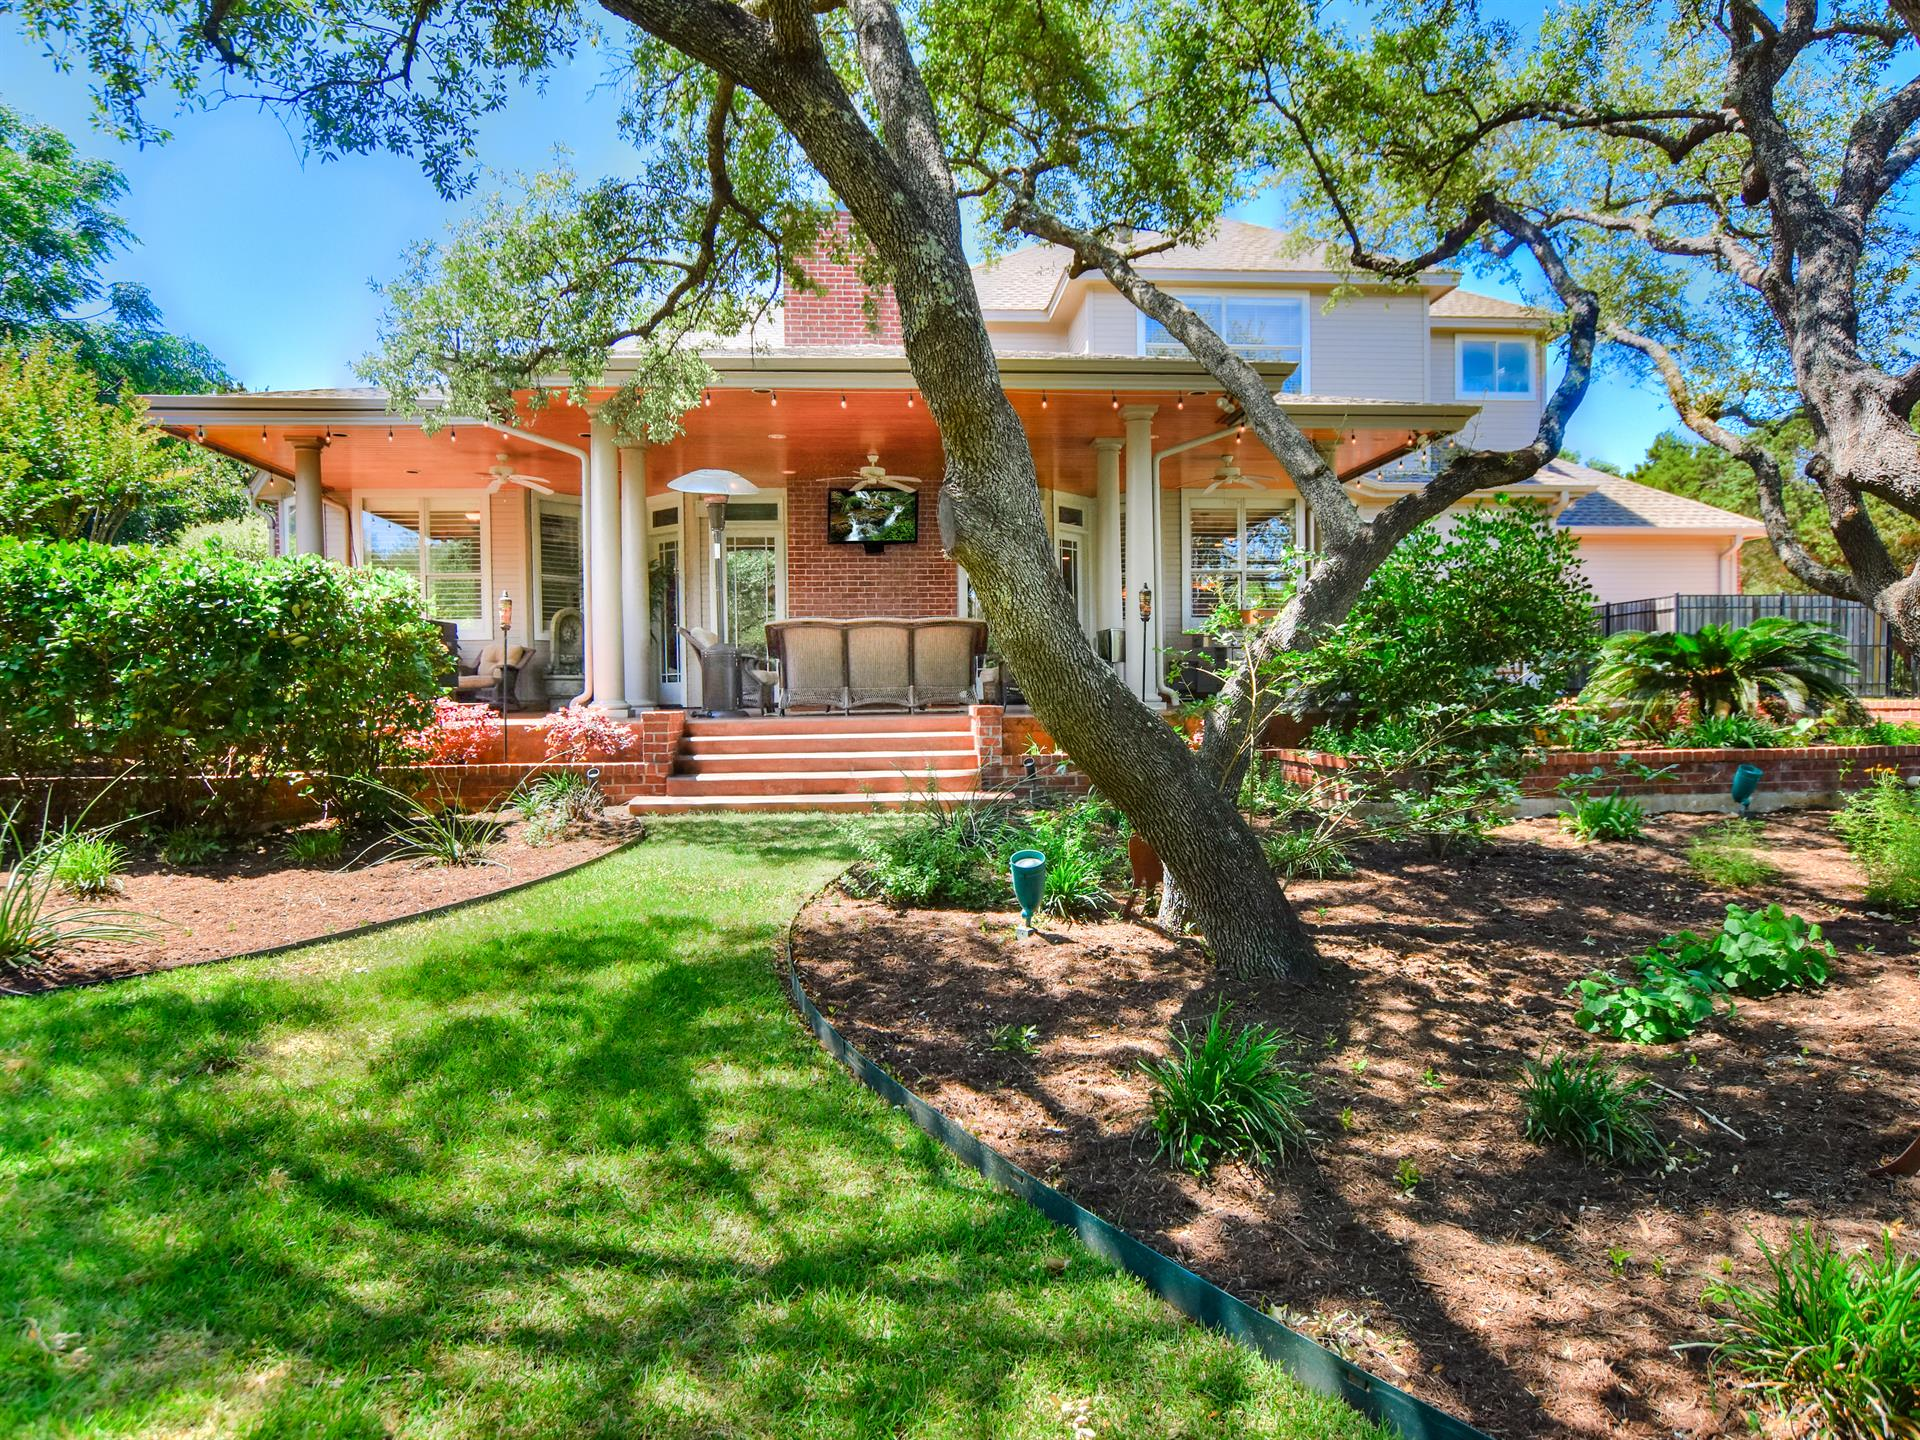 Residential for Sale at 9104 Leaning Rock Circle 9104 Leaning Rock Circle Austin, Texas 78730 United States